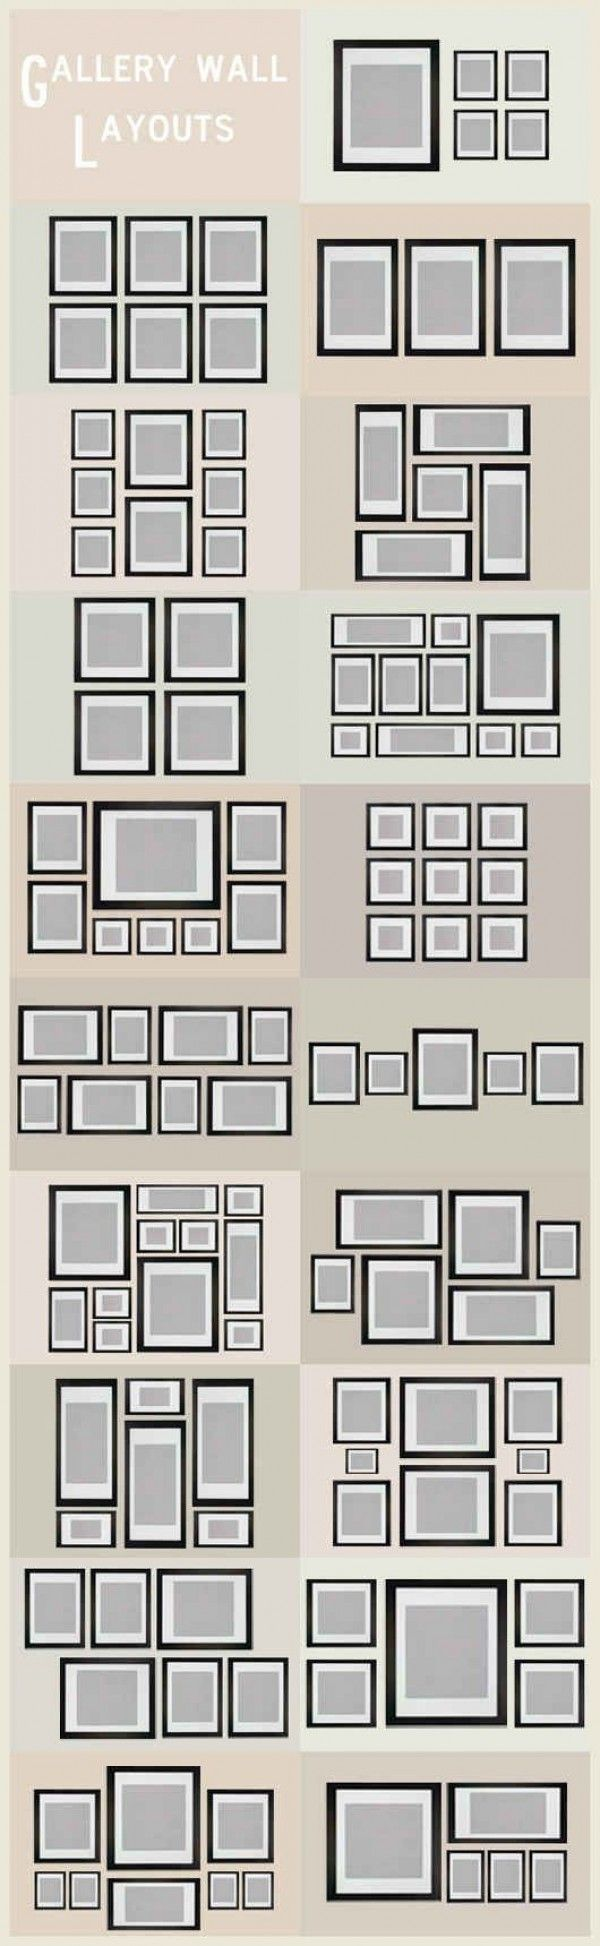 Gallery Wall Planner top 25+ best gallery wall layout ideas on pinterest | gallery wall